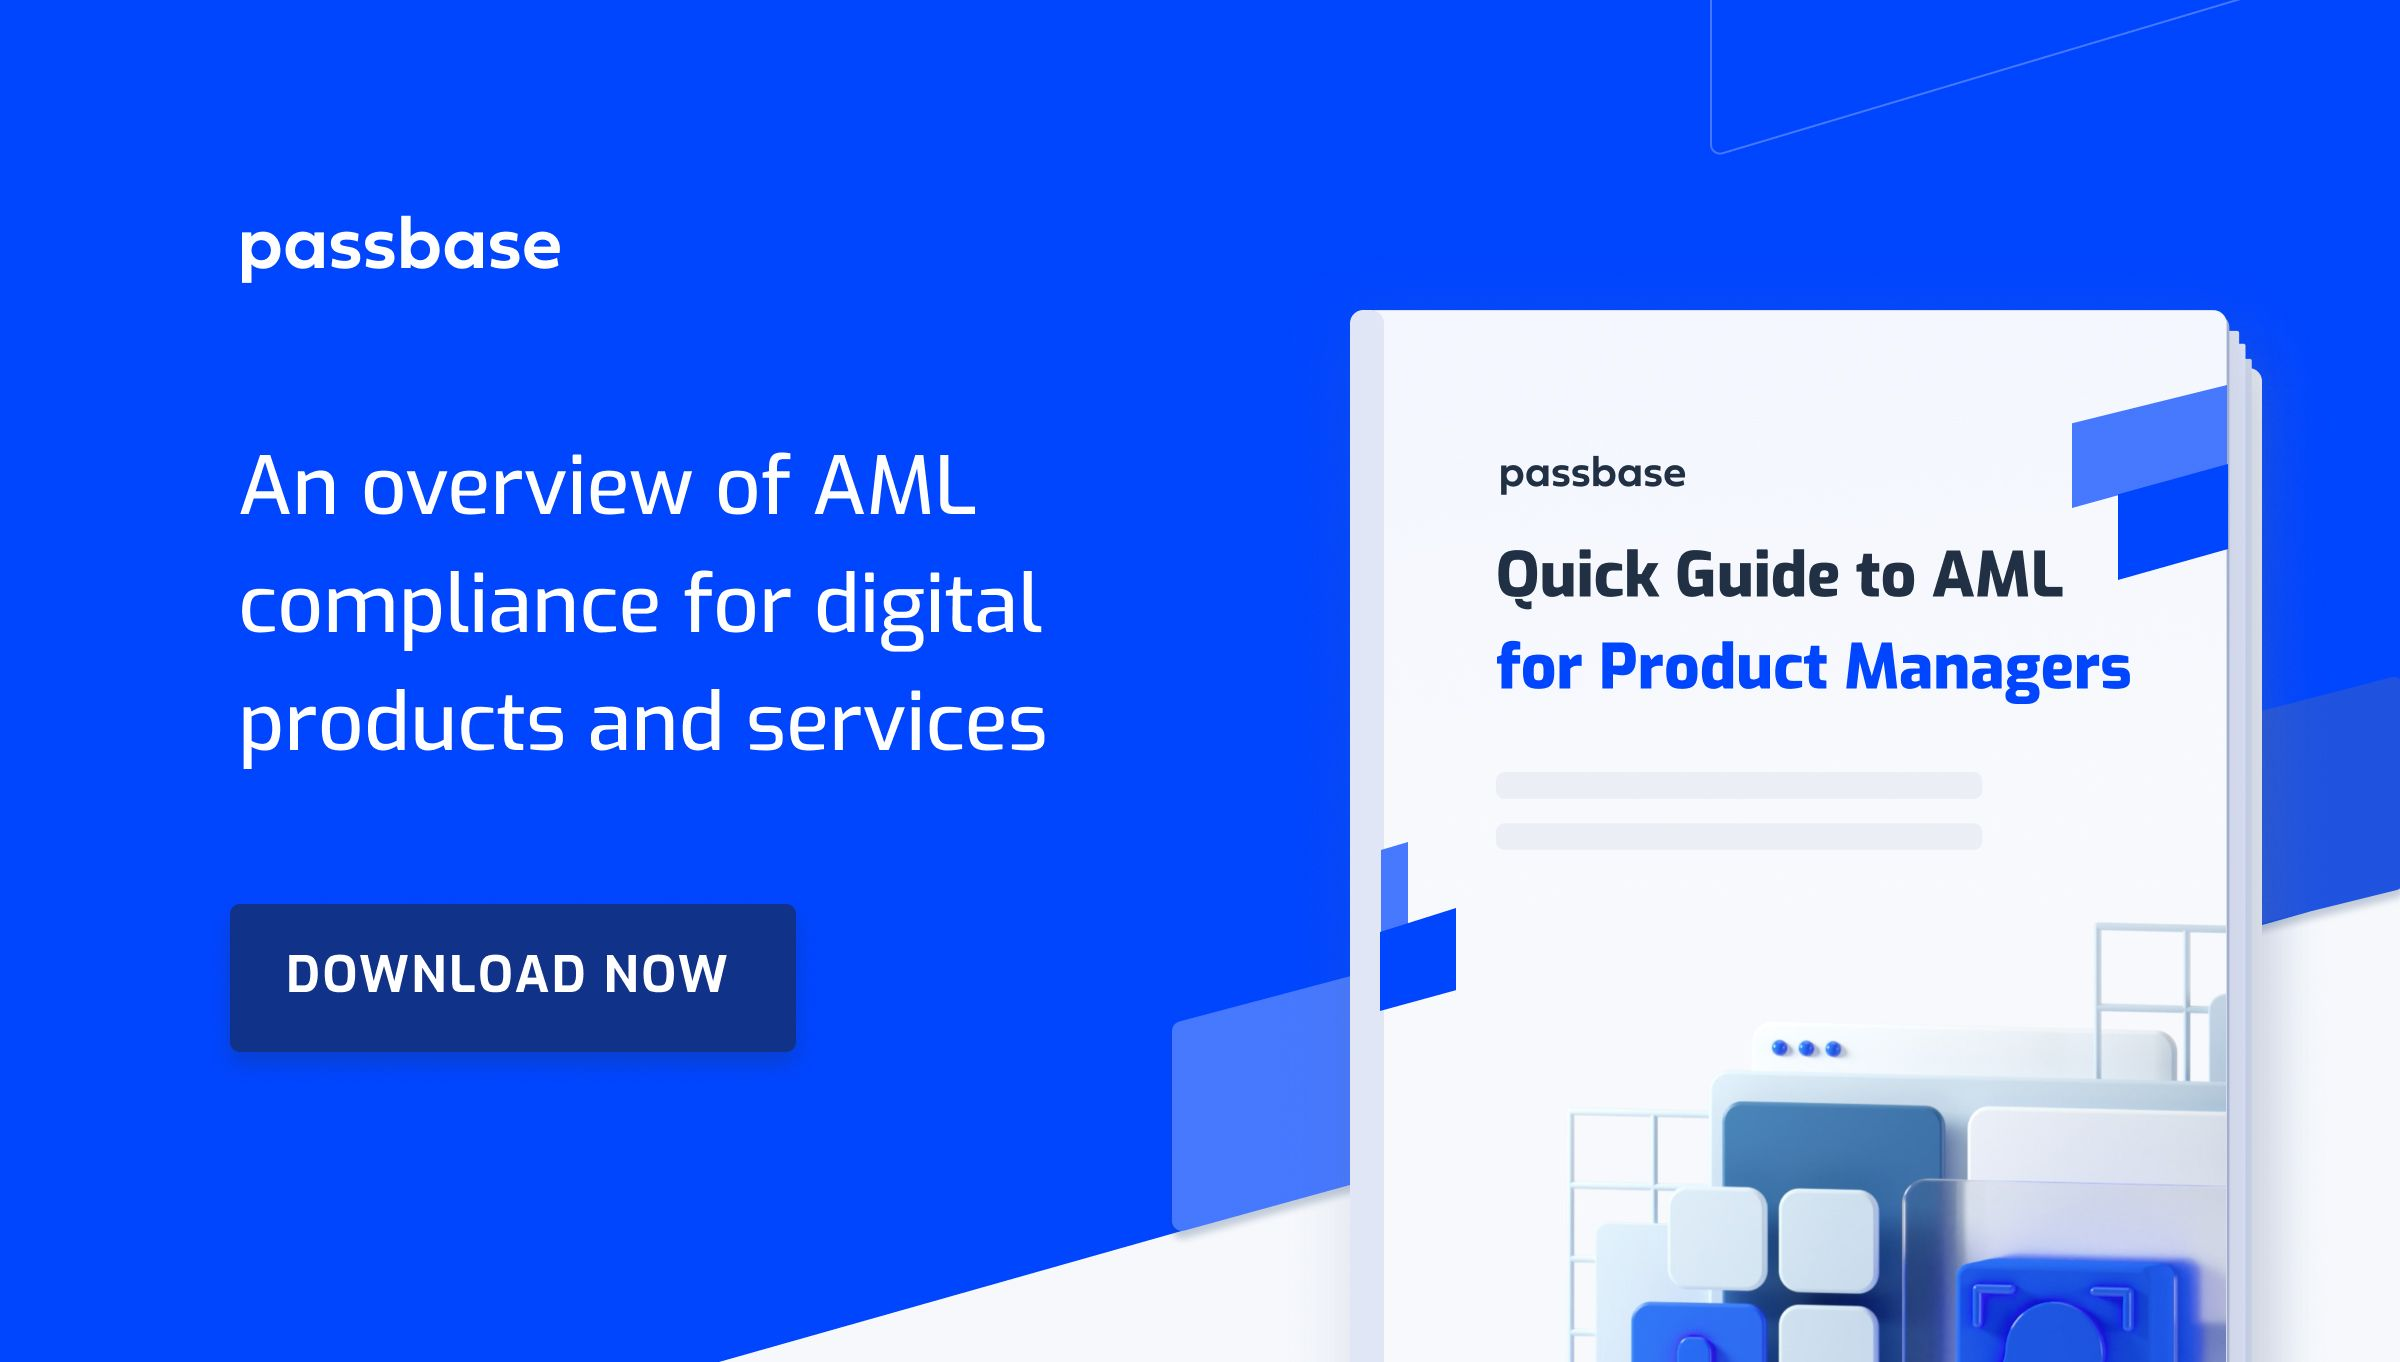 Download a quick guide to AML for product managers by Passbase